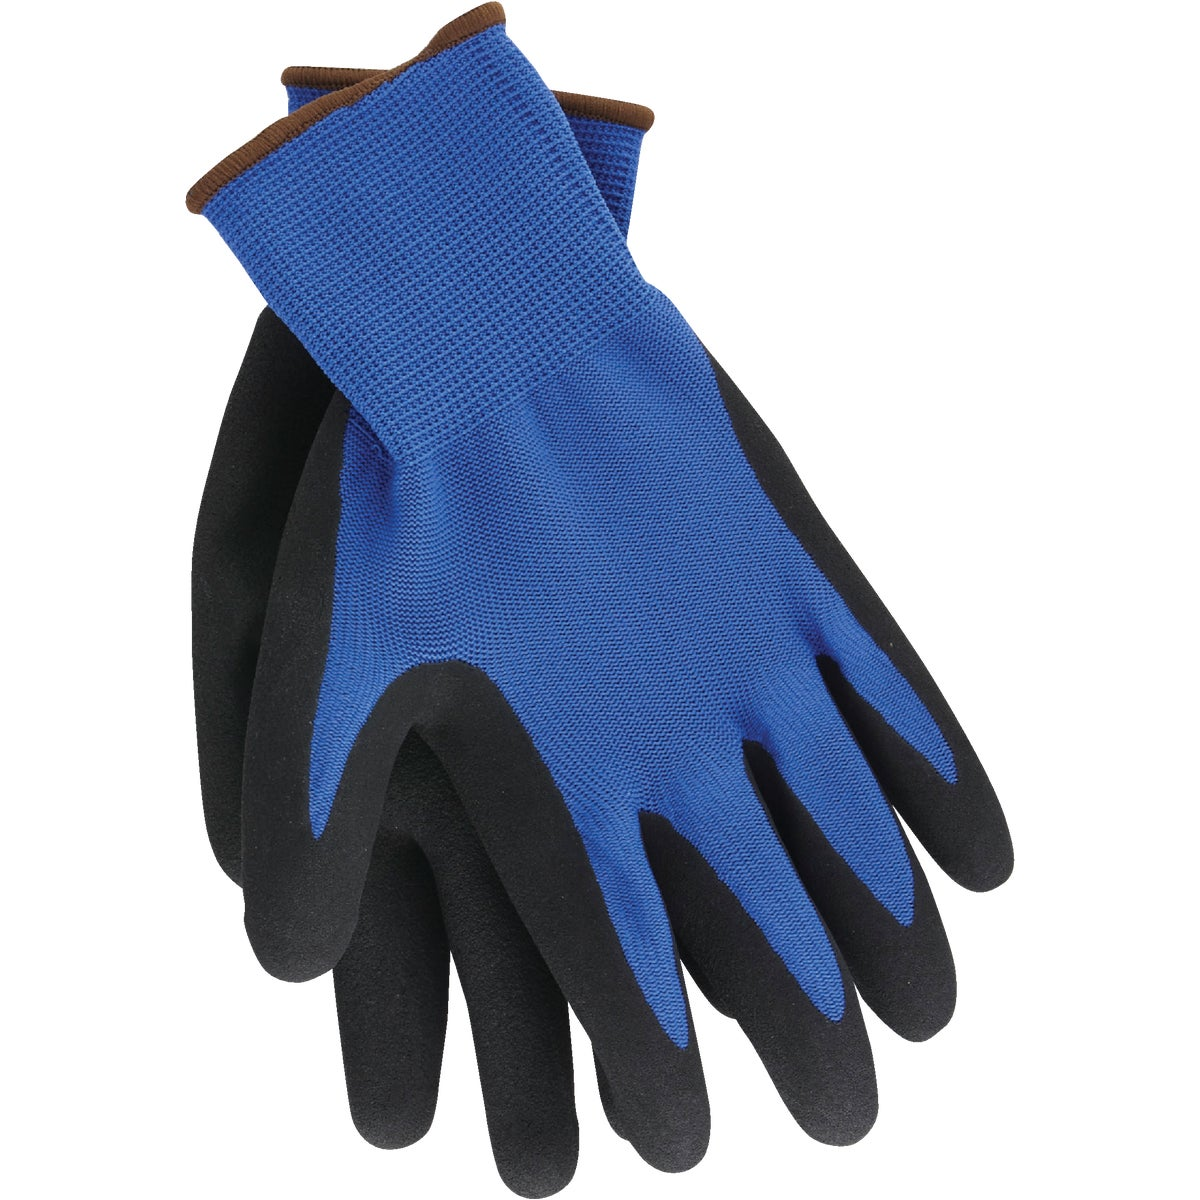 BLUE X-LARGE GRIP GLOVE - 736708 by Do it Best